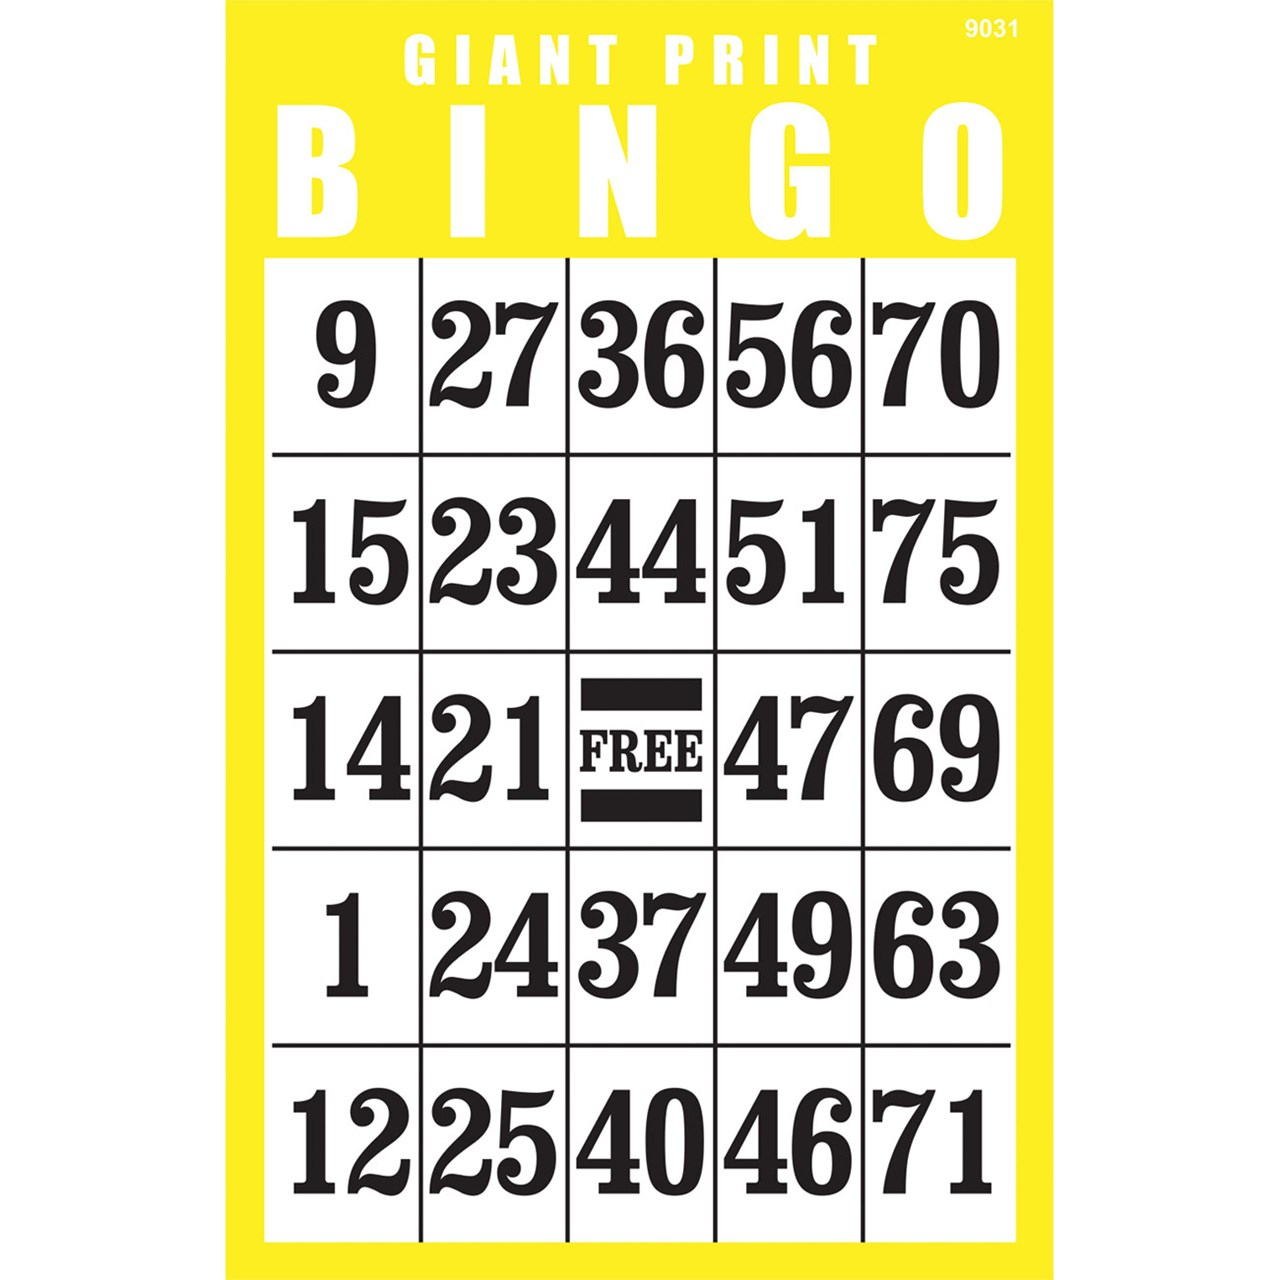 Giant Print Bingo Card- Yellow